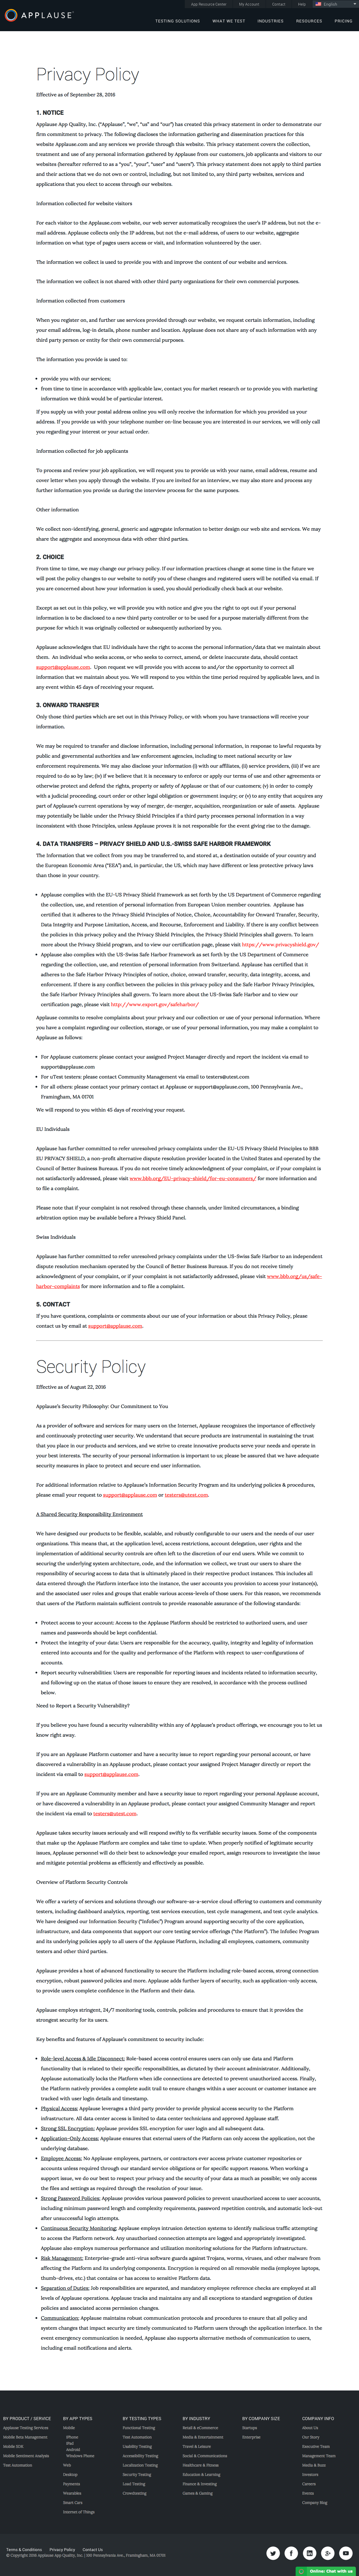 awesome standard privacy policy template embellishment wordpress